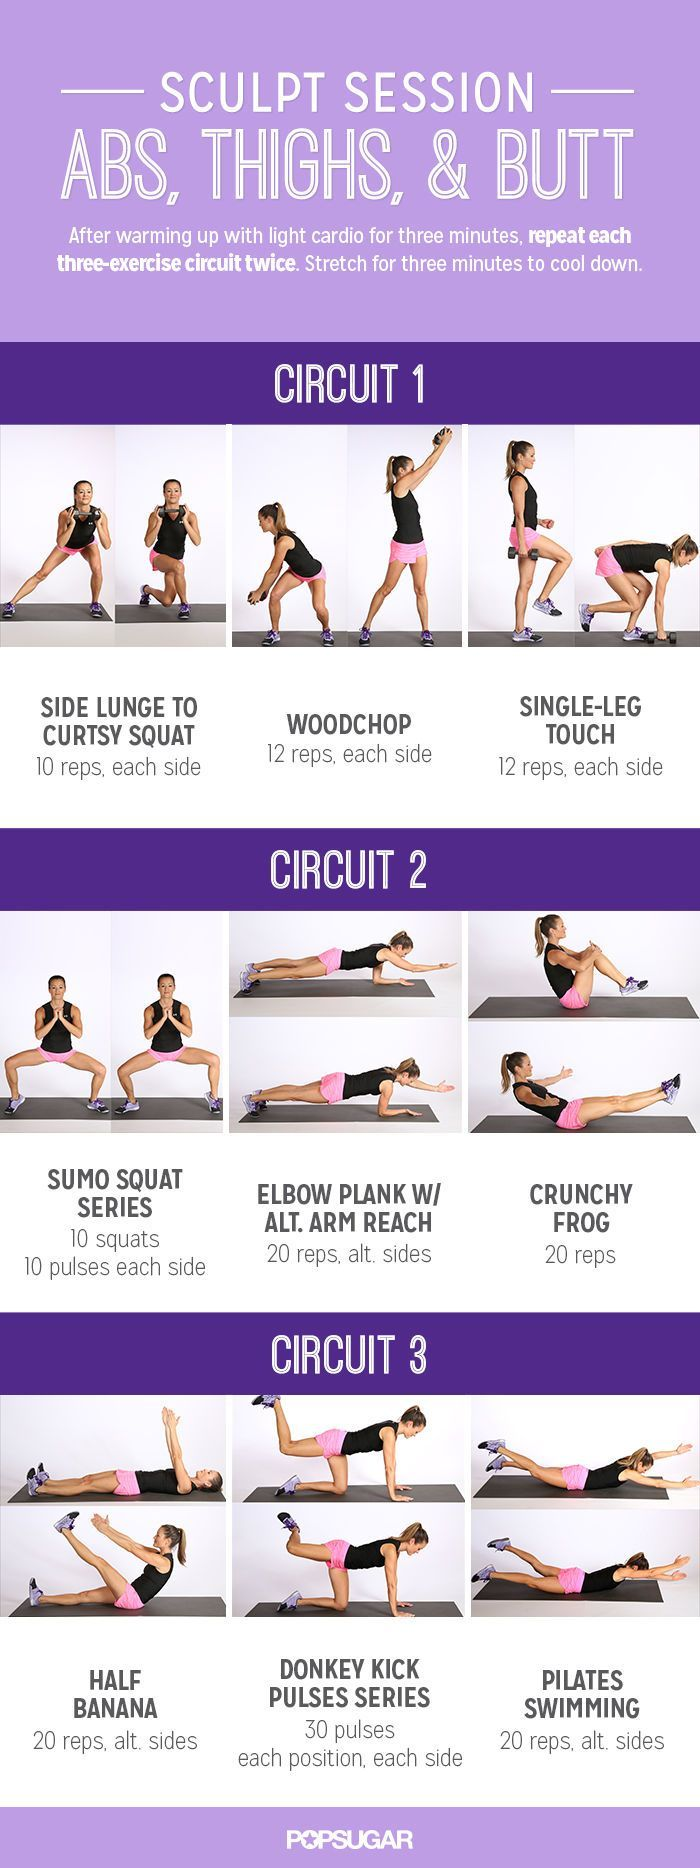 Scultping Abd Theighs and Butt fitness exercise home exercise diy exercise routine exercise routine